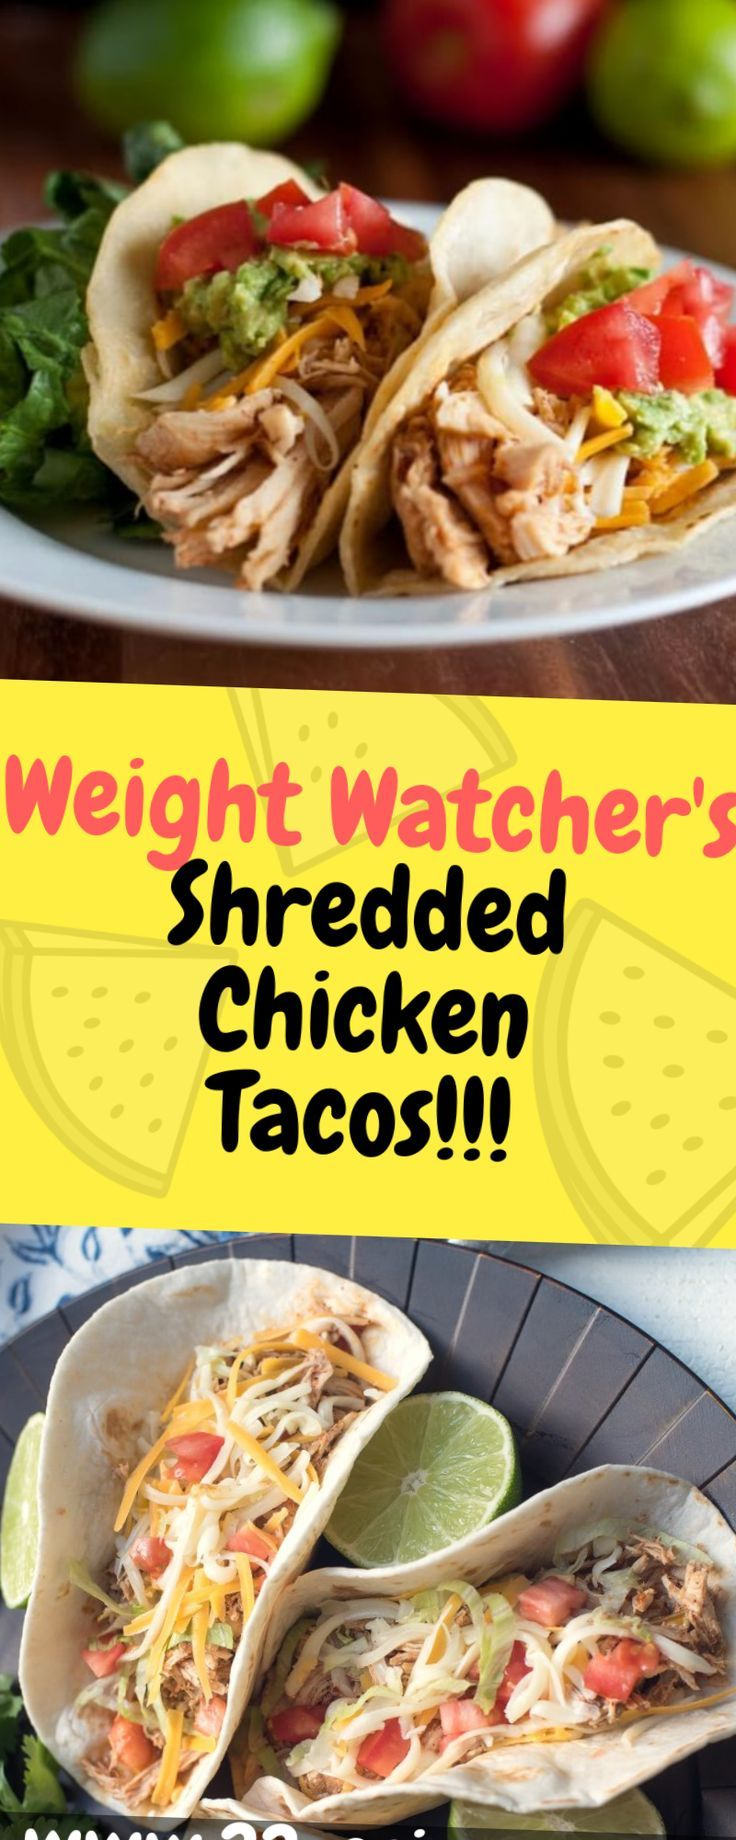 Weight Watchers Shredded Chicken Tacos has four simple ingredients thats made in... -  #chick... #shreddedchickentacos